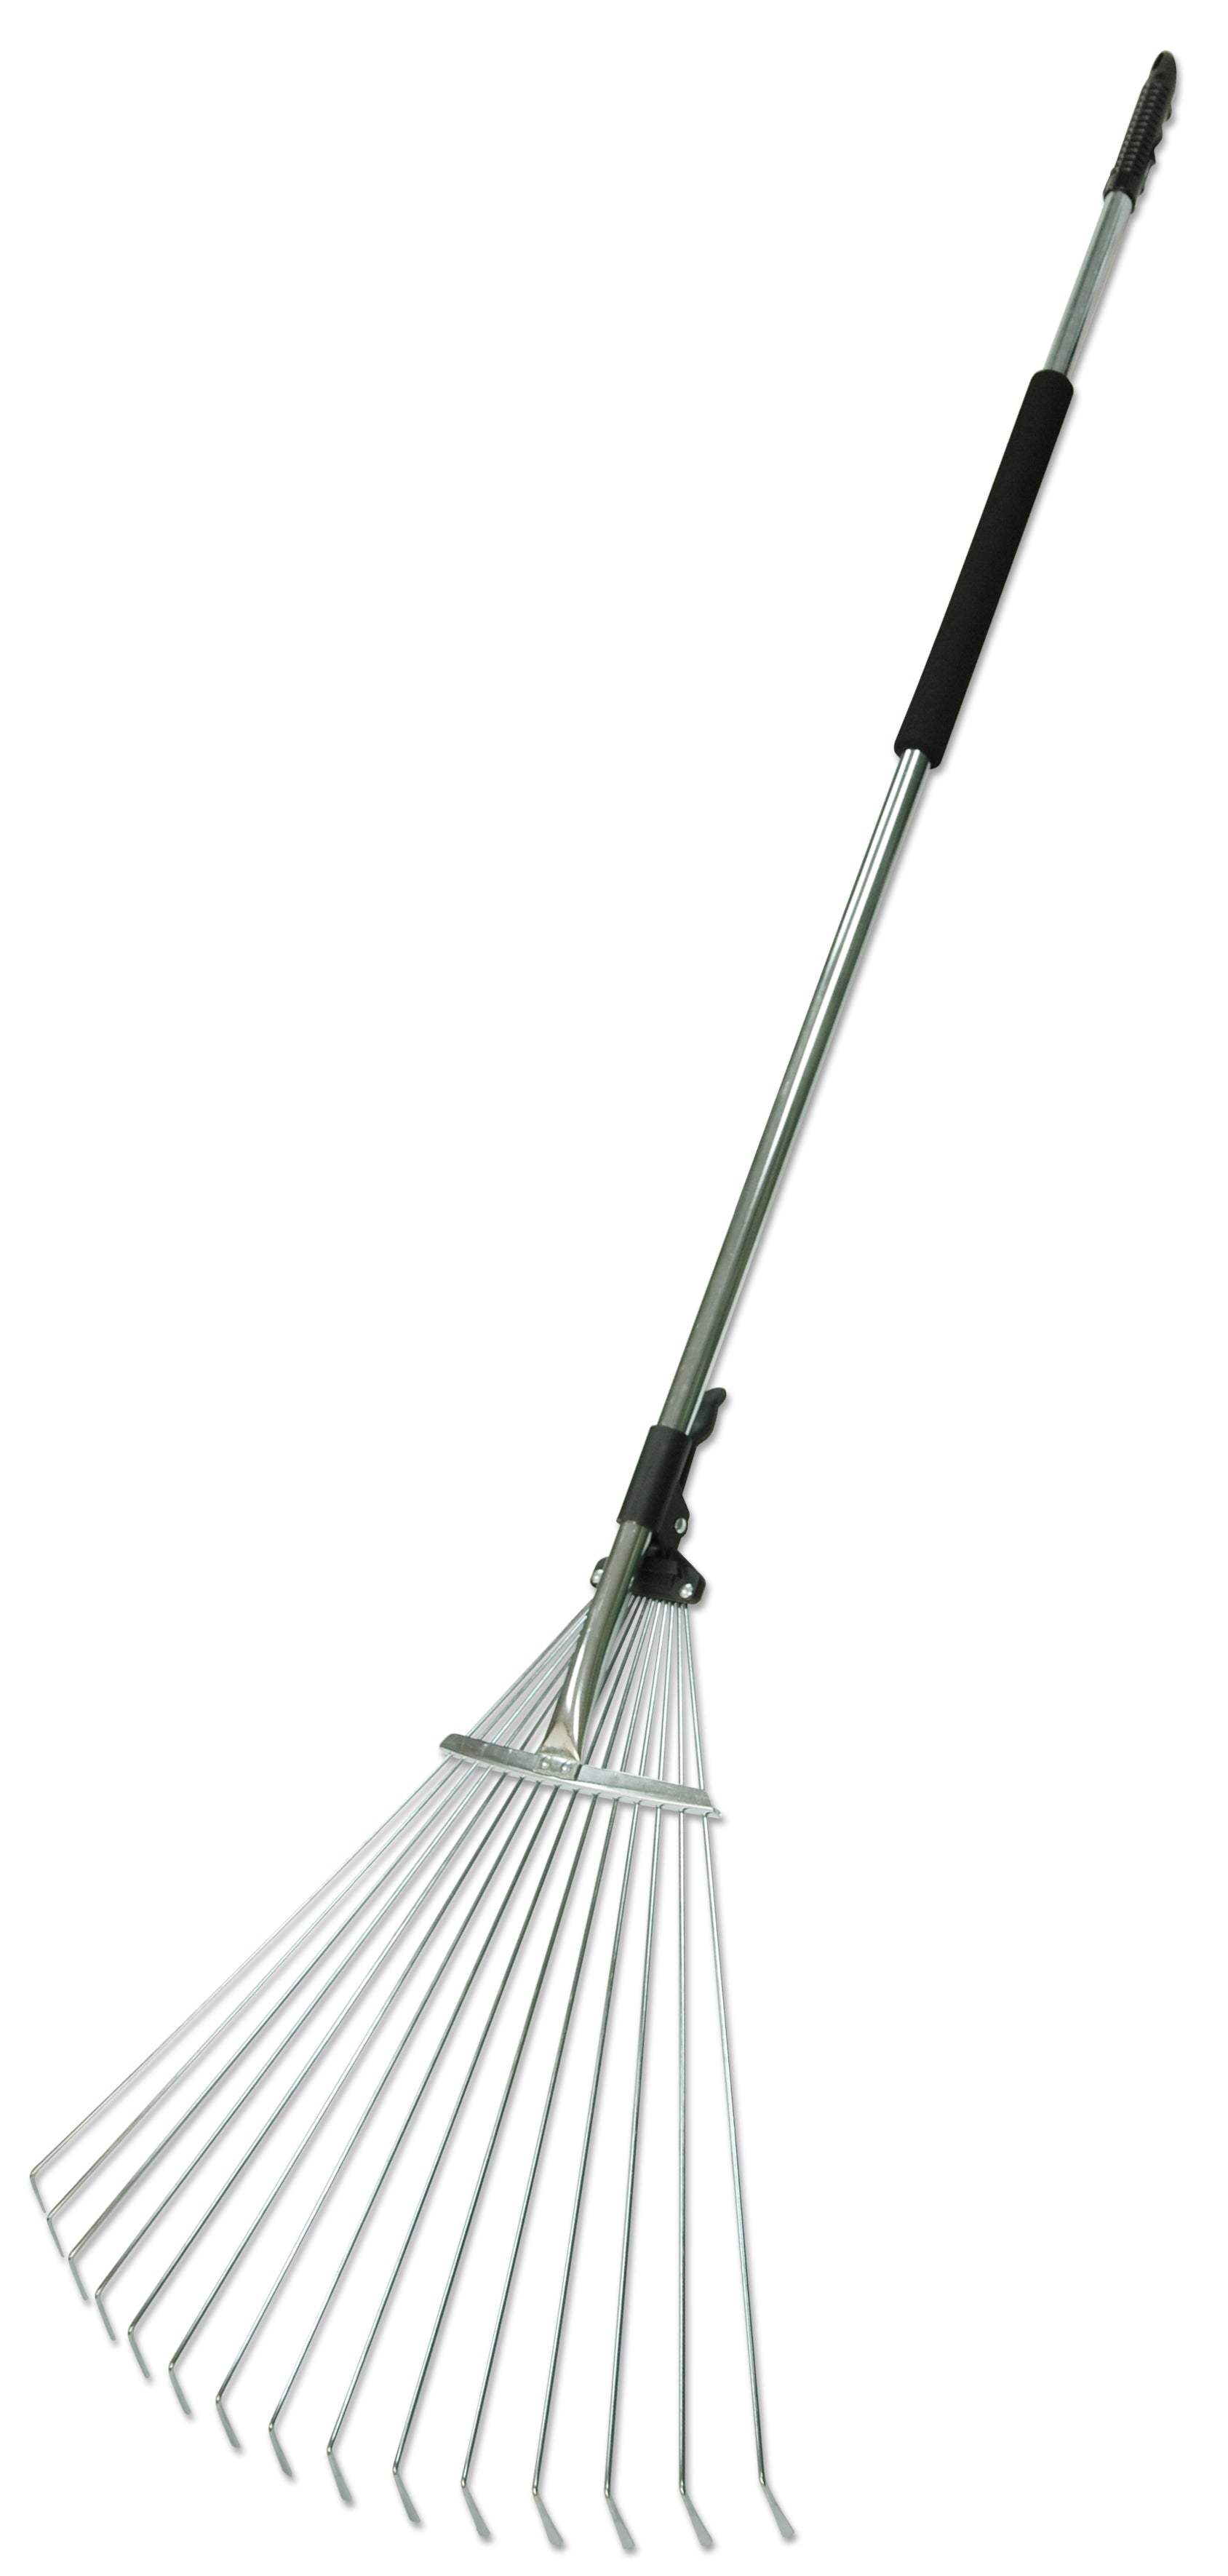 ADJUST-O-RAKE - Easy Adjustable Rake for All Surfaces ( Hand Tools and Garden Tools)